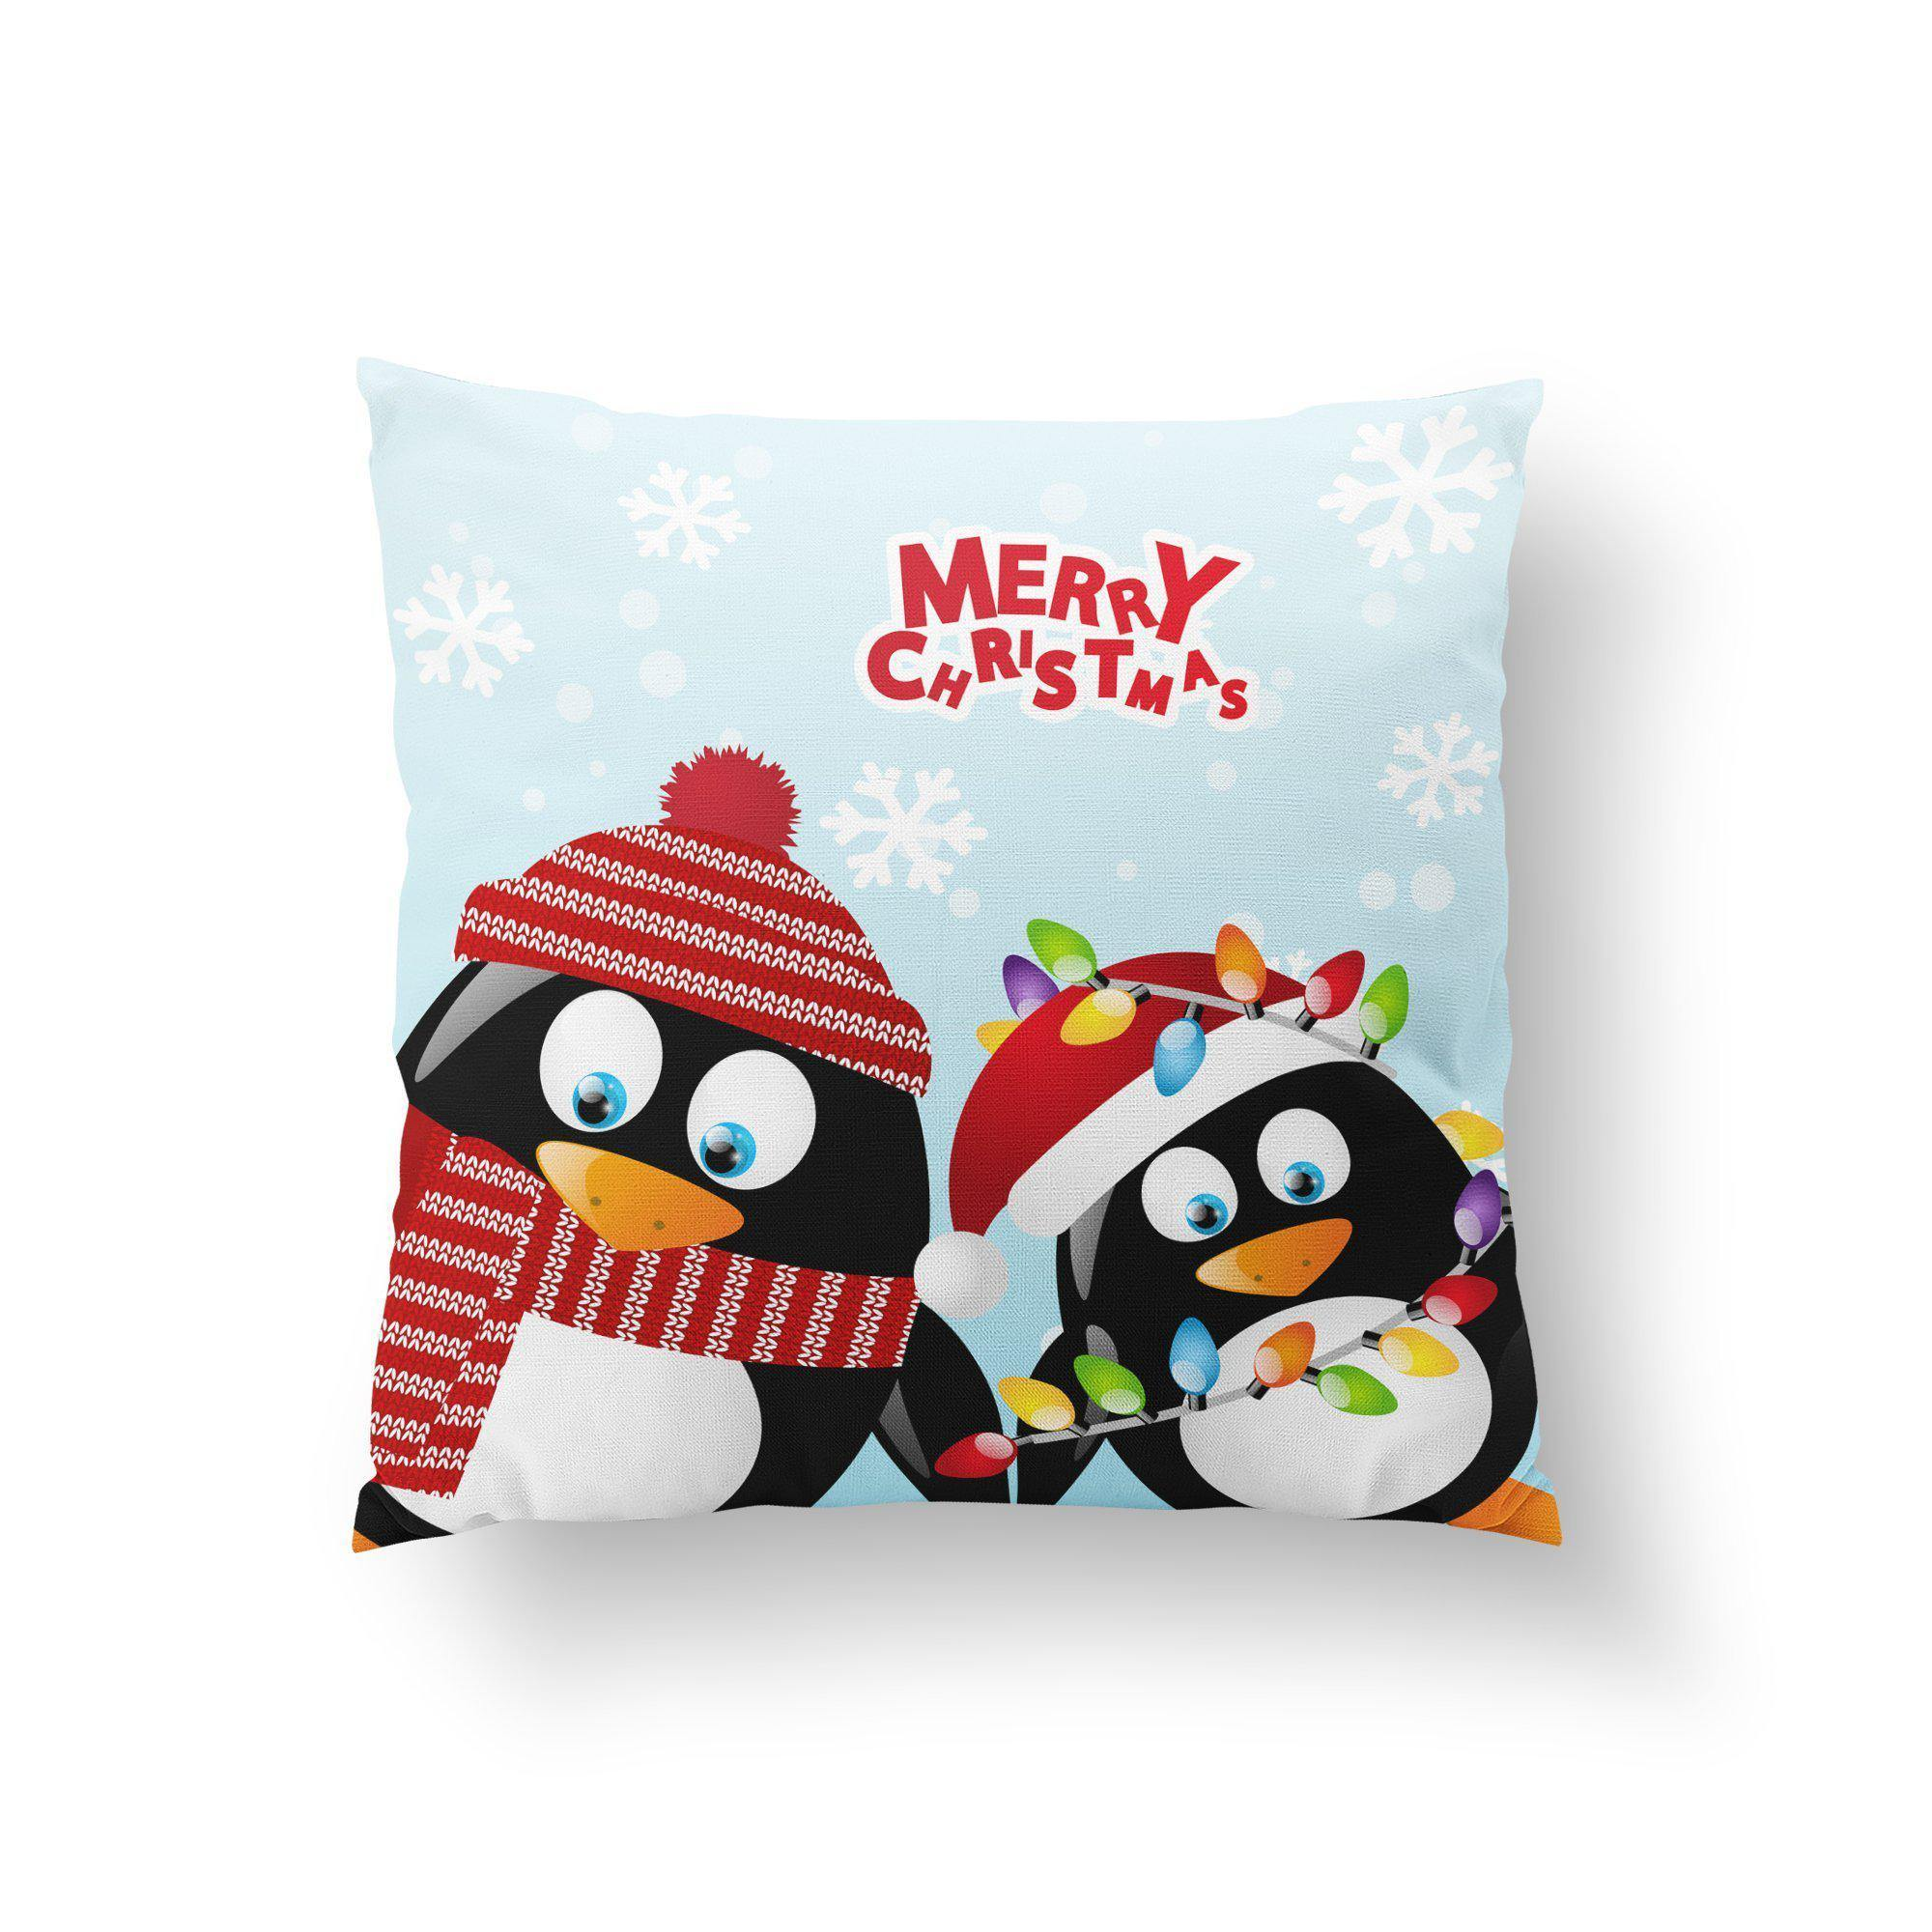 Holiday Pillow Cover - Pillow Covers - W.FRANCIS